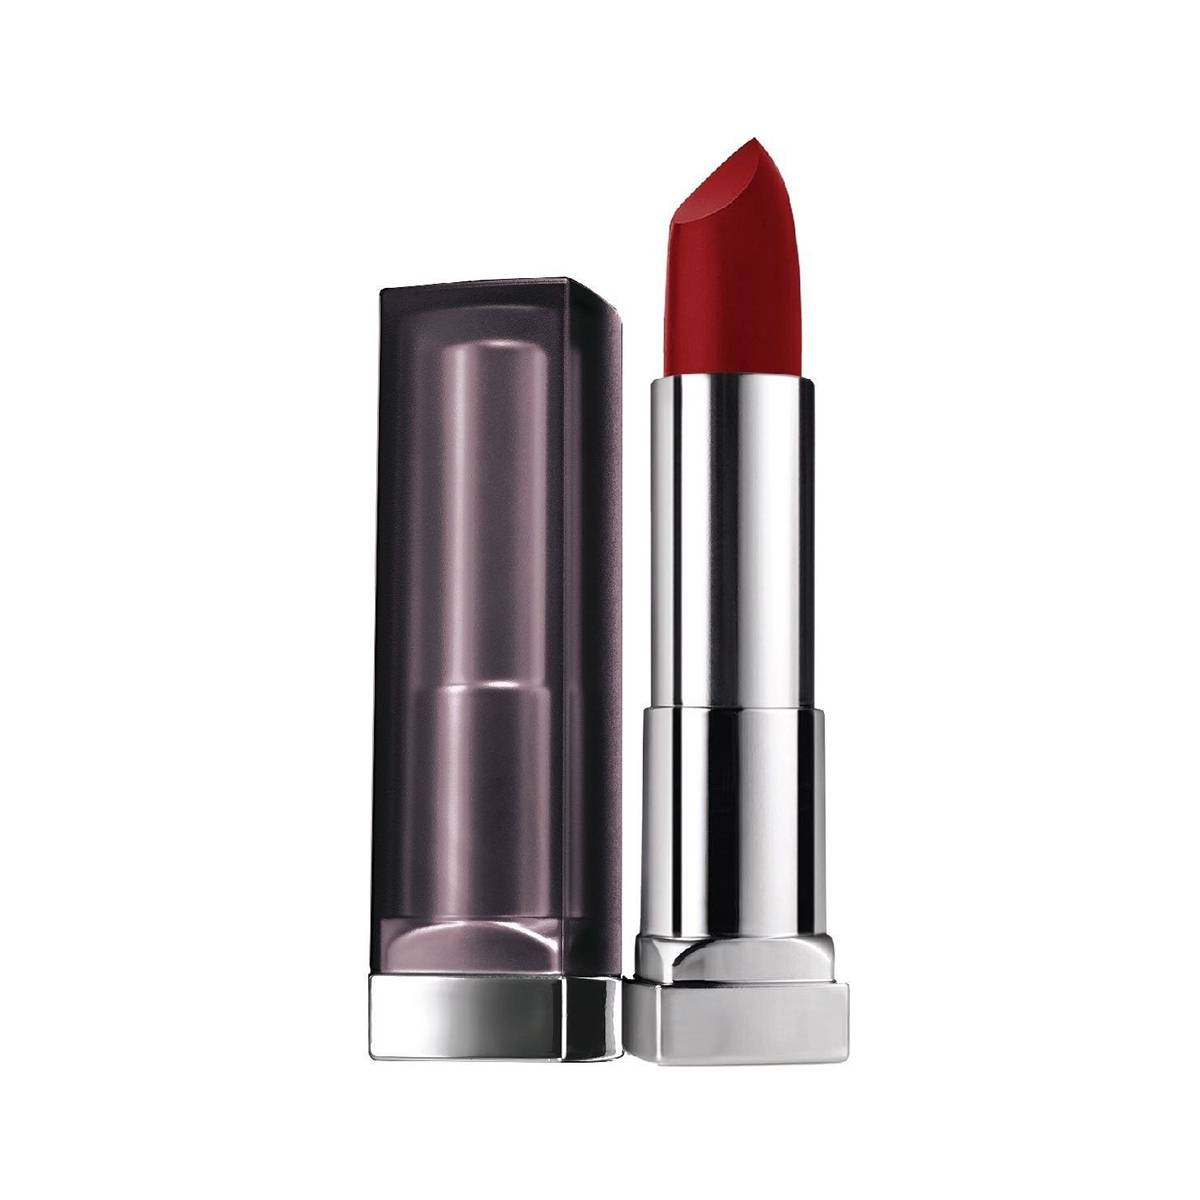 MAYBELLINE COLOR SENSATIONAL® CREAMY MATTE LIPSTICK RICH RUBY